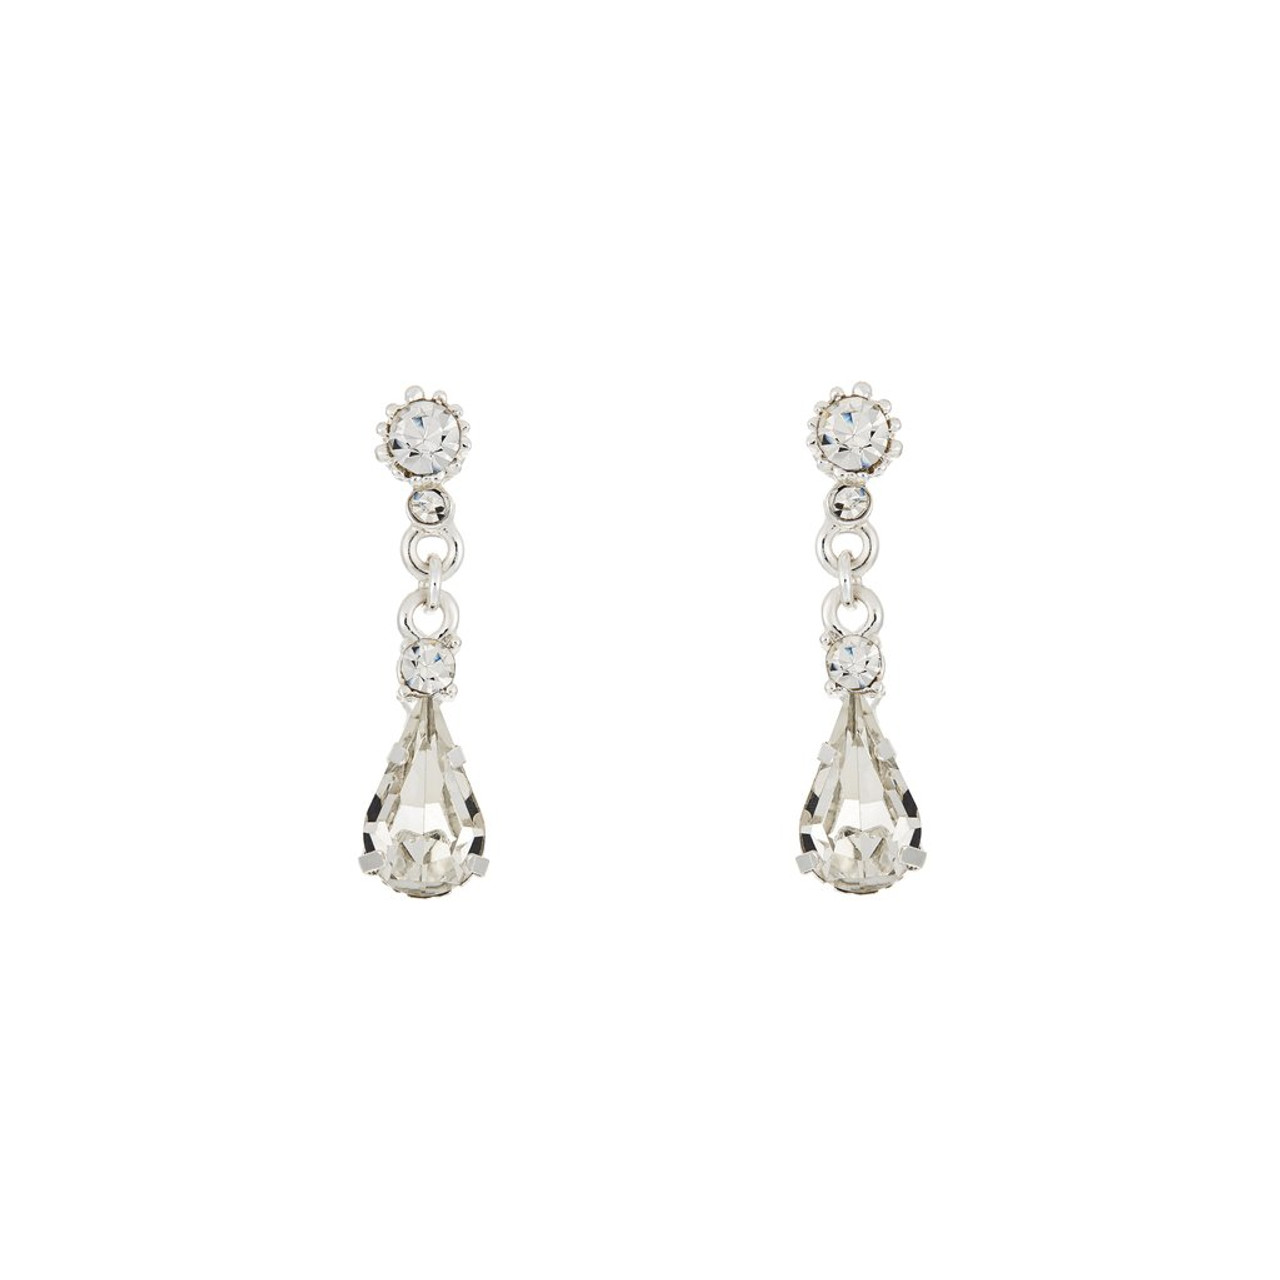 Marionat Bridal Jewelry 12503 Small rhinestone hanging earrings